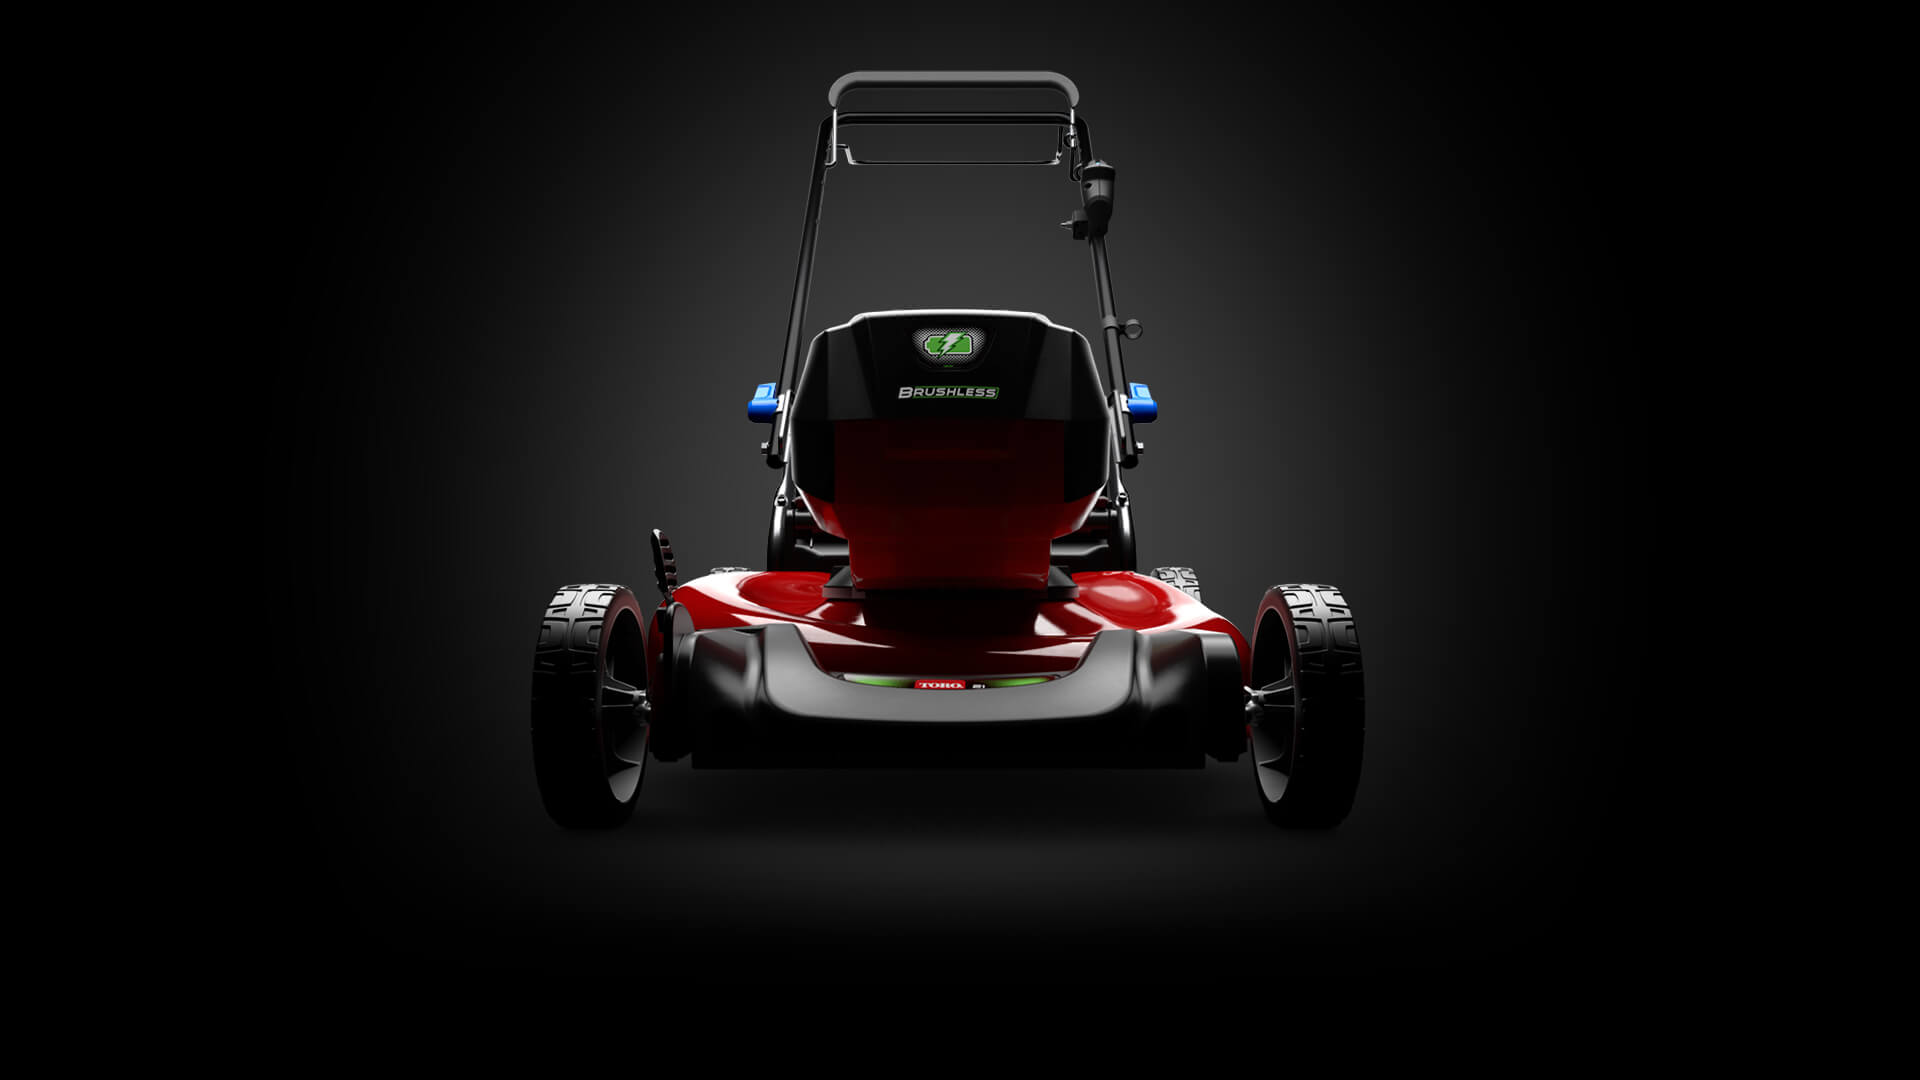 front facing view of mower